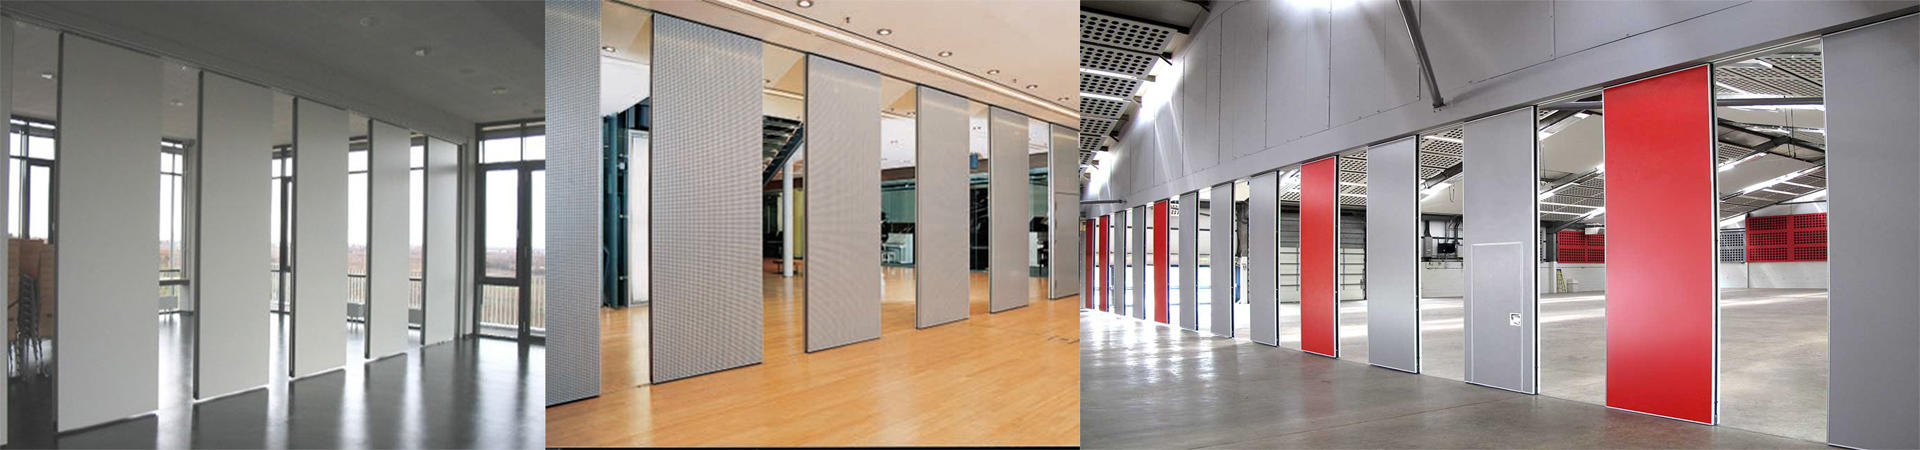 EBUNGE-Aluminium Frame Sound Proof Hotel Removable Acoustic Partition Wall